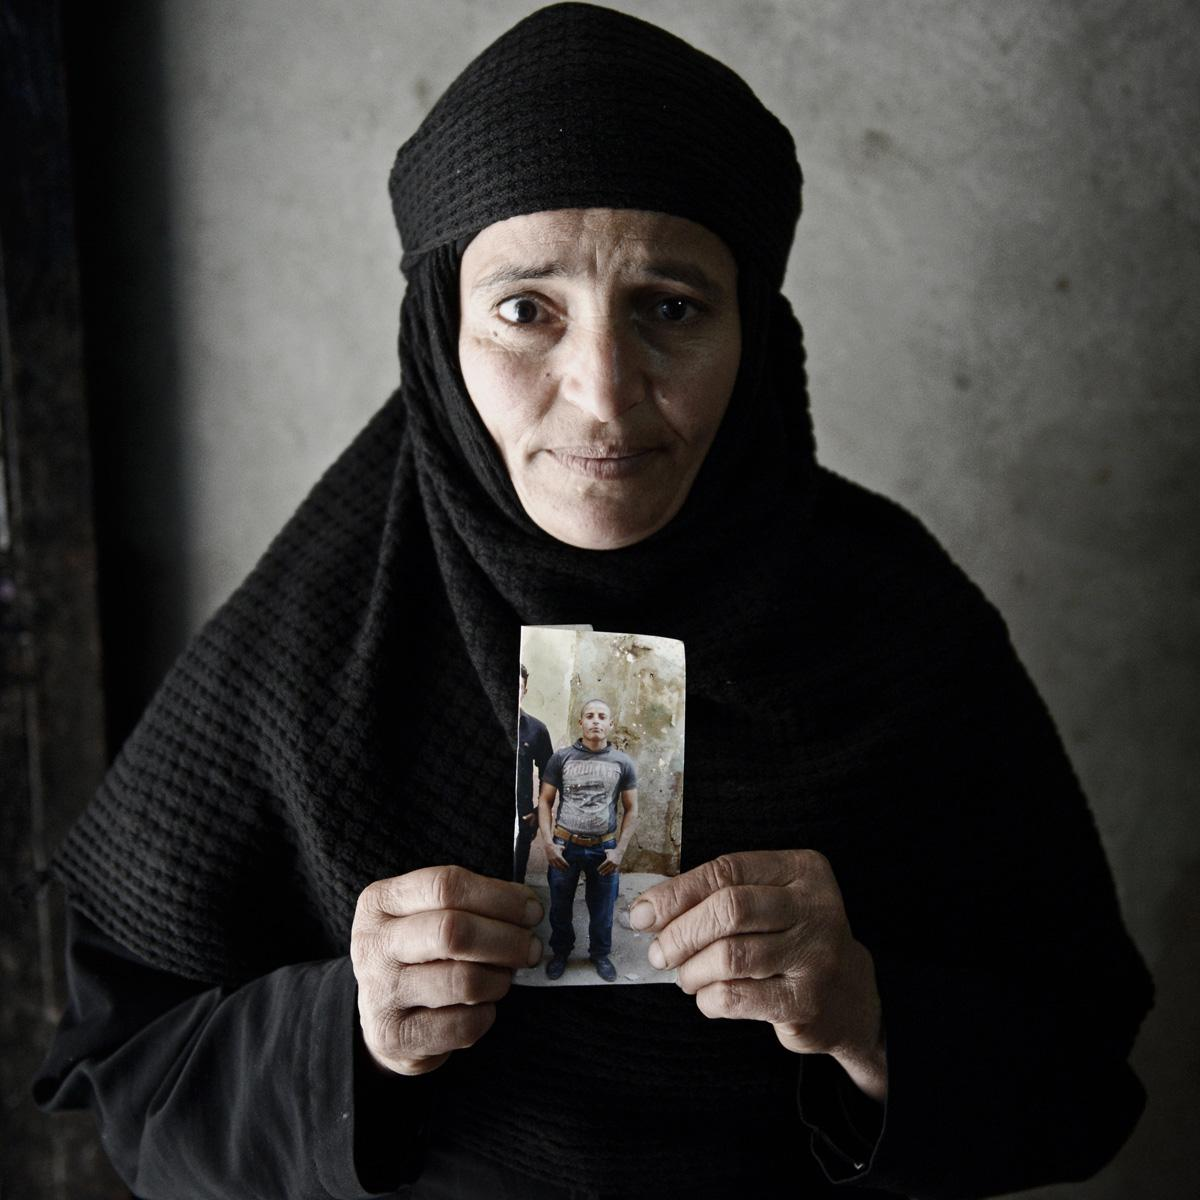 Mother of slain worker Kirollos, 23. One of 21 Egyptians beheaded by ISIS. My story for MEE: http://t.co/CtYtQi3Q8N http://t.co/14DgjG7evc